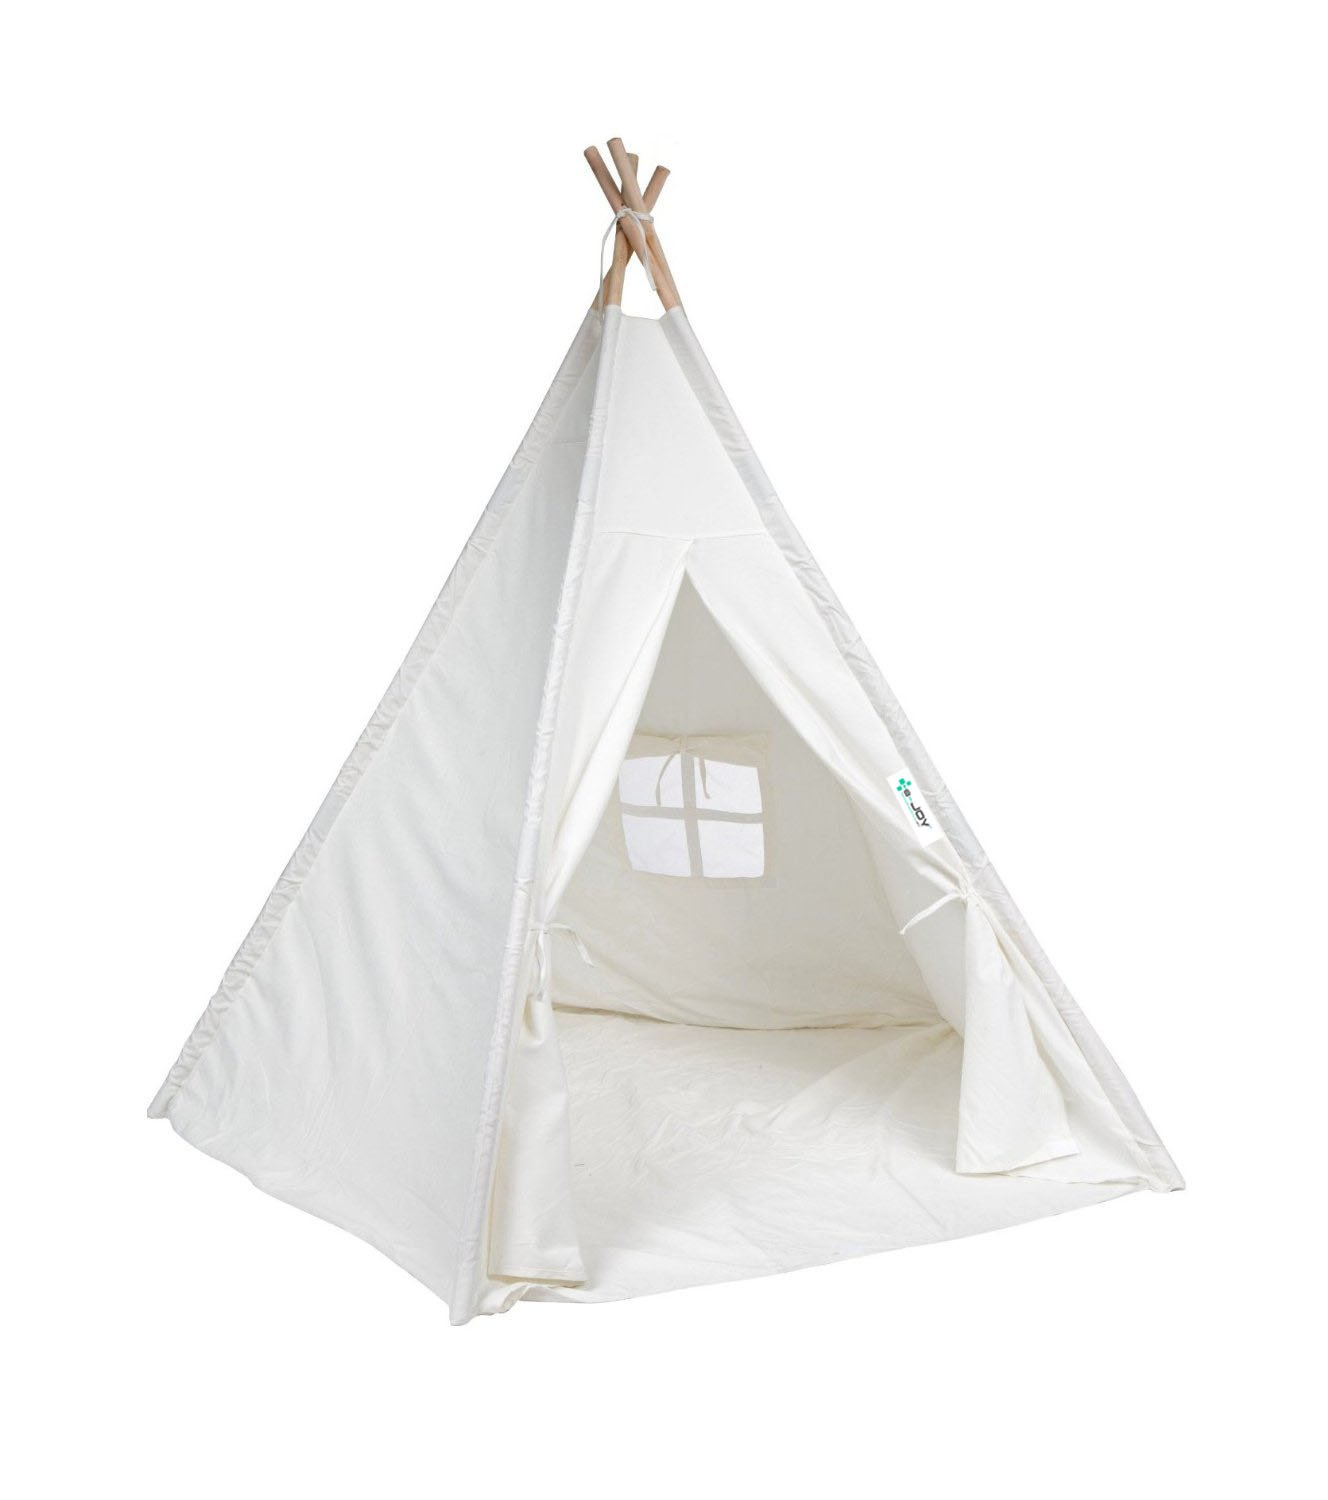 Amazon.com e-Joy 6u0027 Indoor Indian Playhouse Toy Teepee Play Tent for Kids Toddlers Canvas Teepee With Carry Case With Mat (Off-White) Home u0026 Kitchen  sc 1 st  Amazon.com & Amazon.com: e-Joy 6u0027 Indoor Indian Playhouse Toy Teepee Play Tent ...